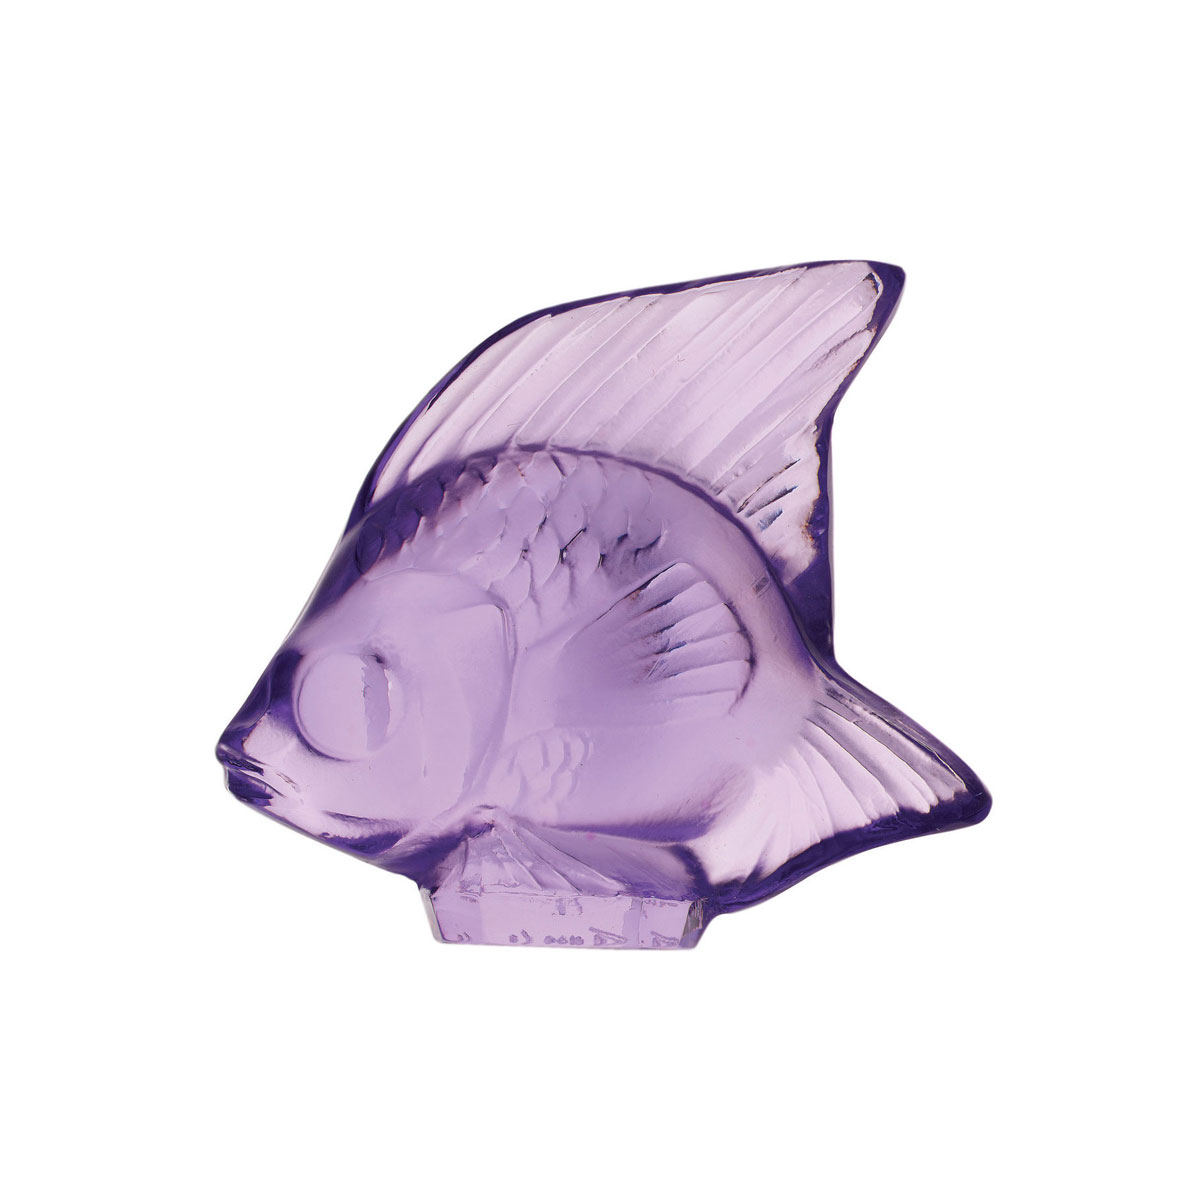 Lalique Crystal, Light Purple Fish Sculpture